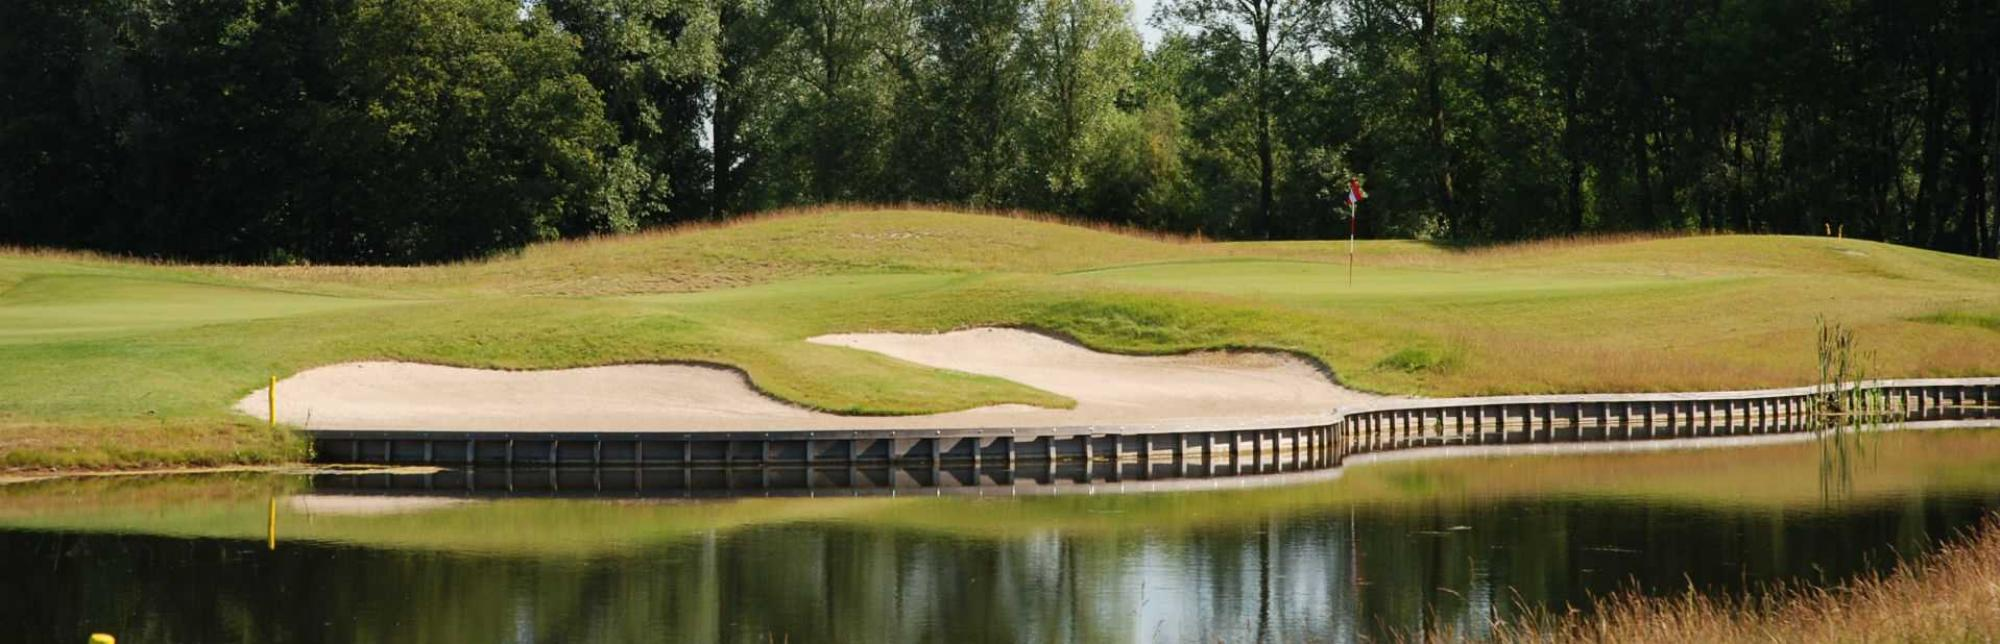 The Damme Golf  Country Club's beautiful golf course in magnificent Bruges  Ypres.